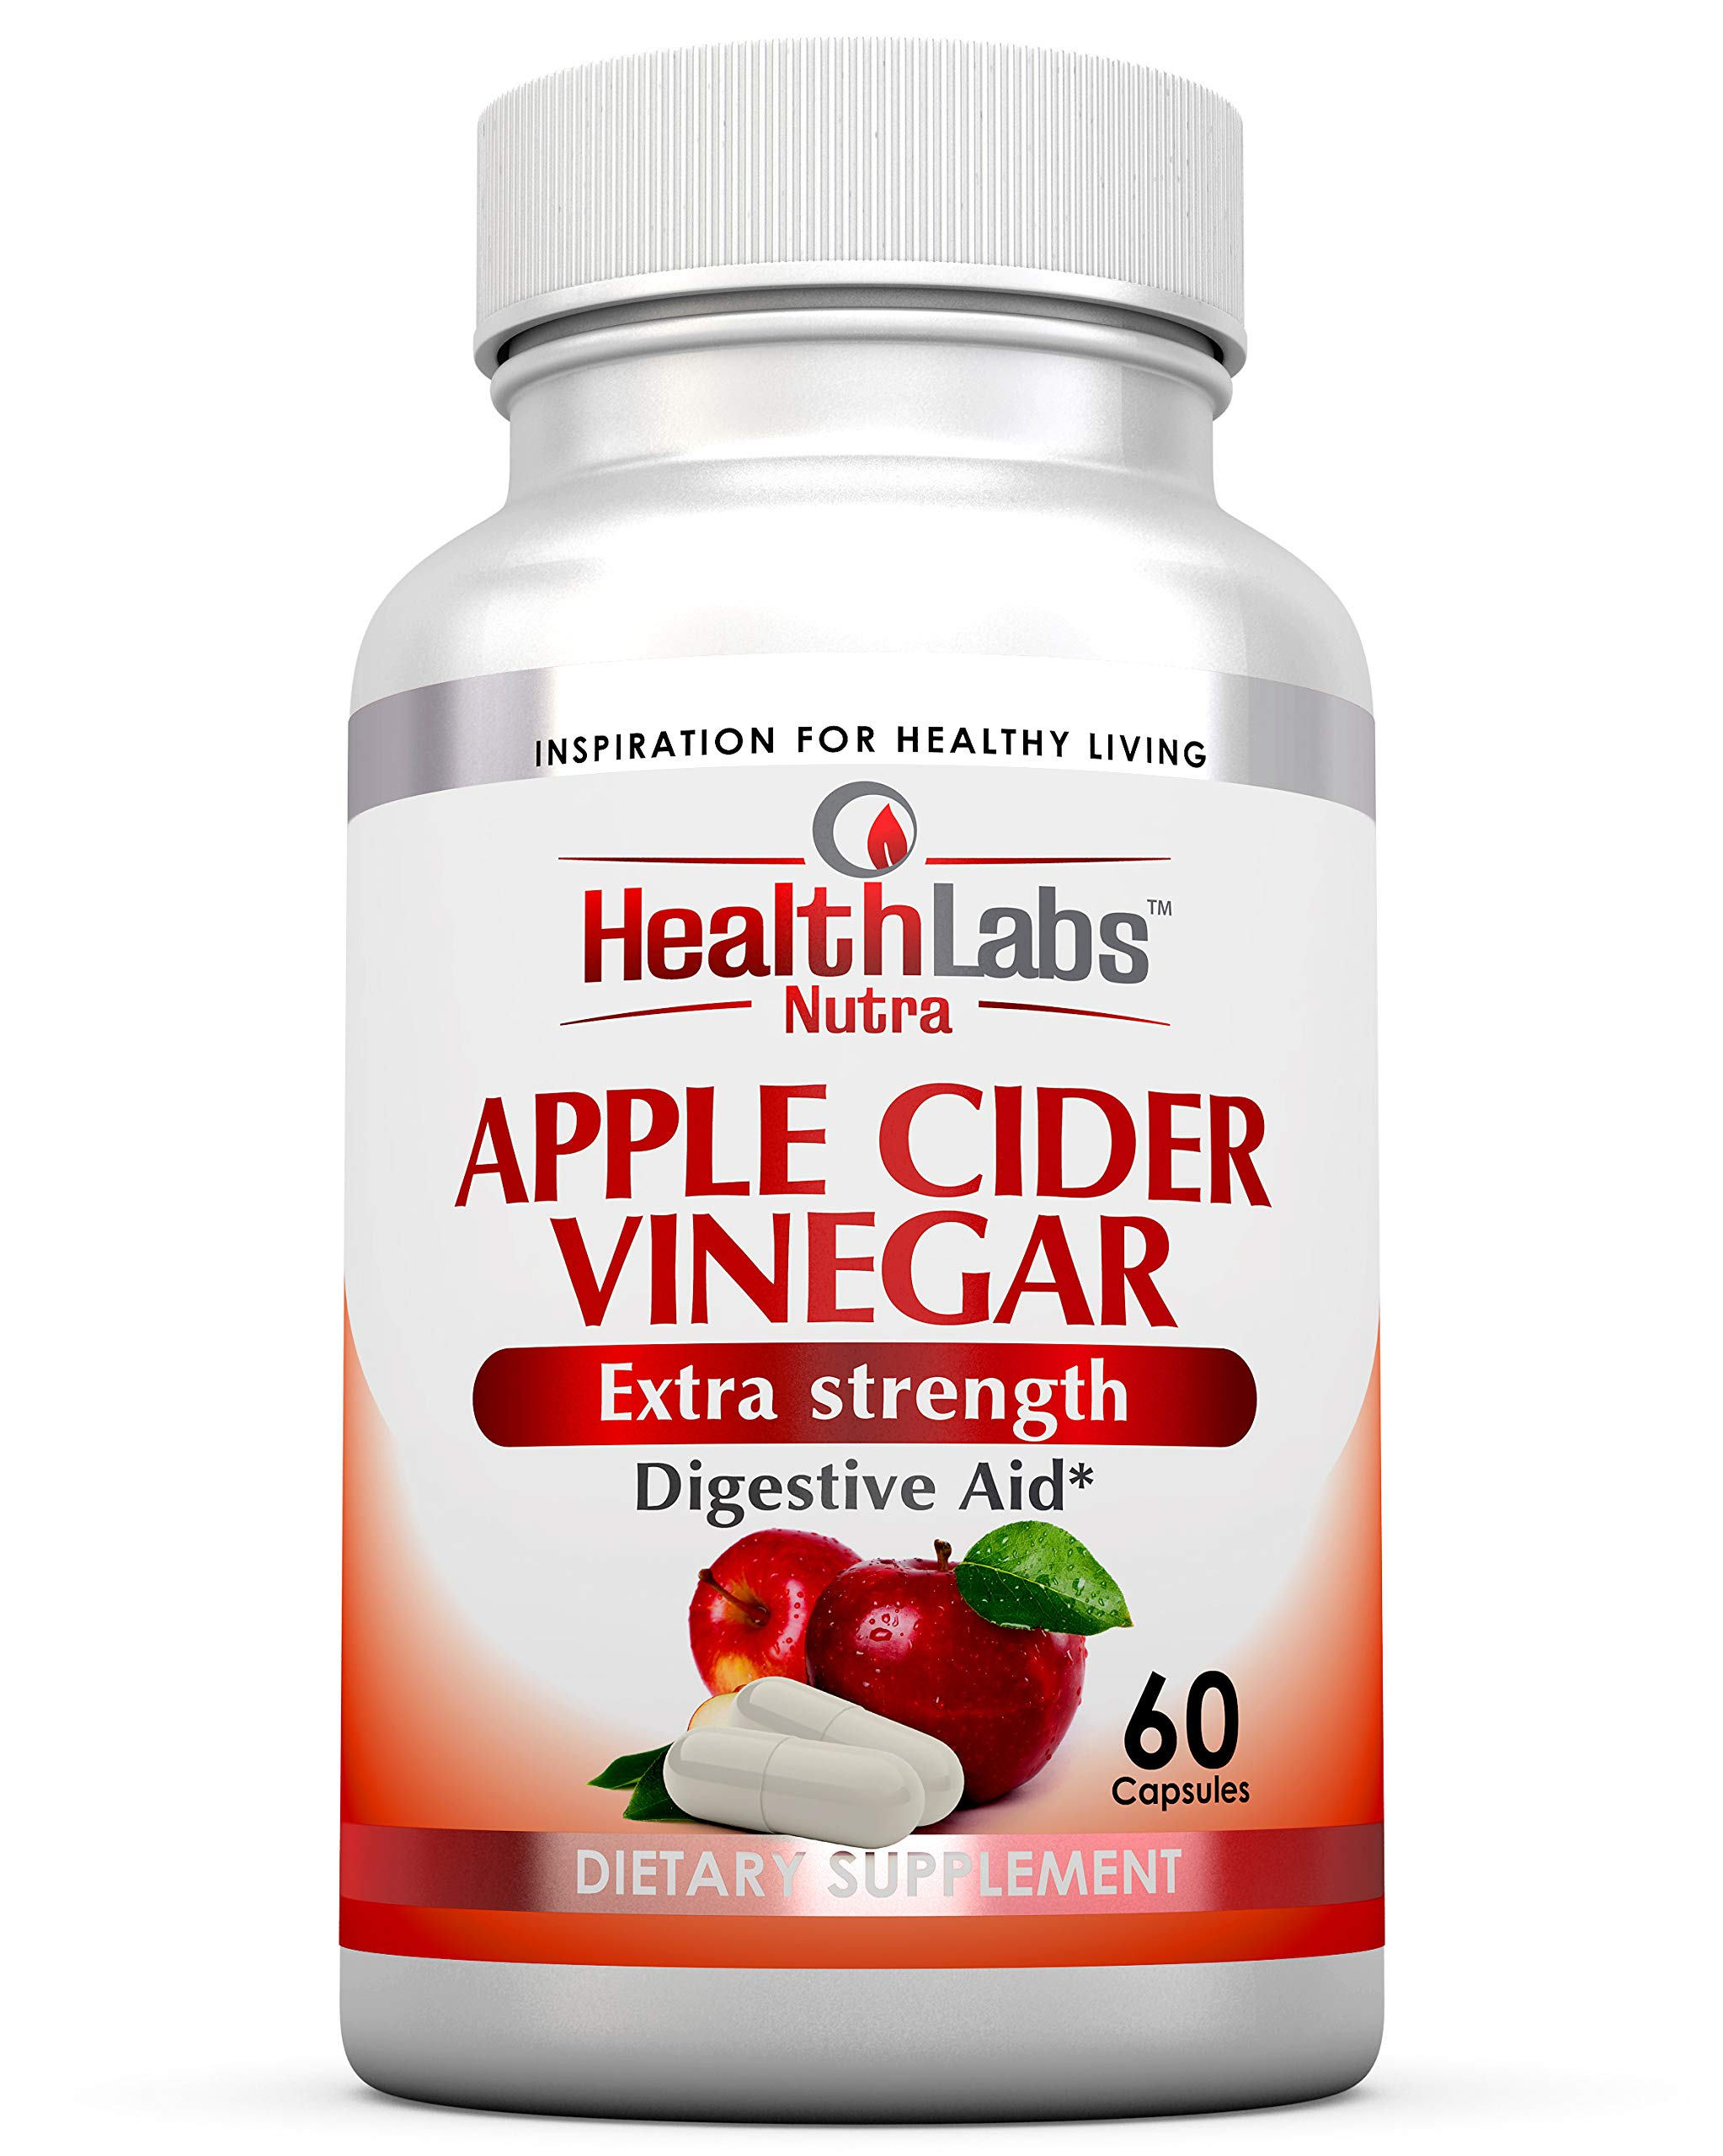 Health Labs Nutra Apple Cider Vinegar Capsules (1300 mg) Non-GMO, Gluten Free, Vegan | Natural | Made in The USA | Pack of 6 by Health Labs Nutra